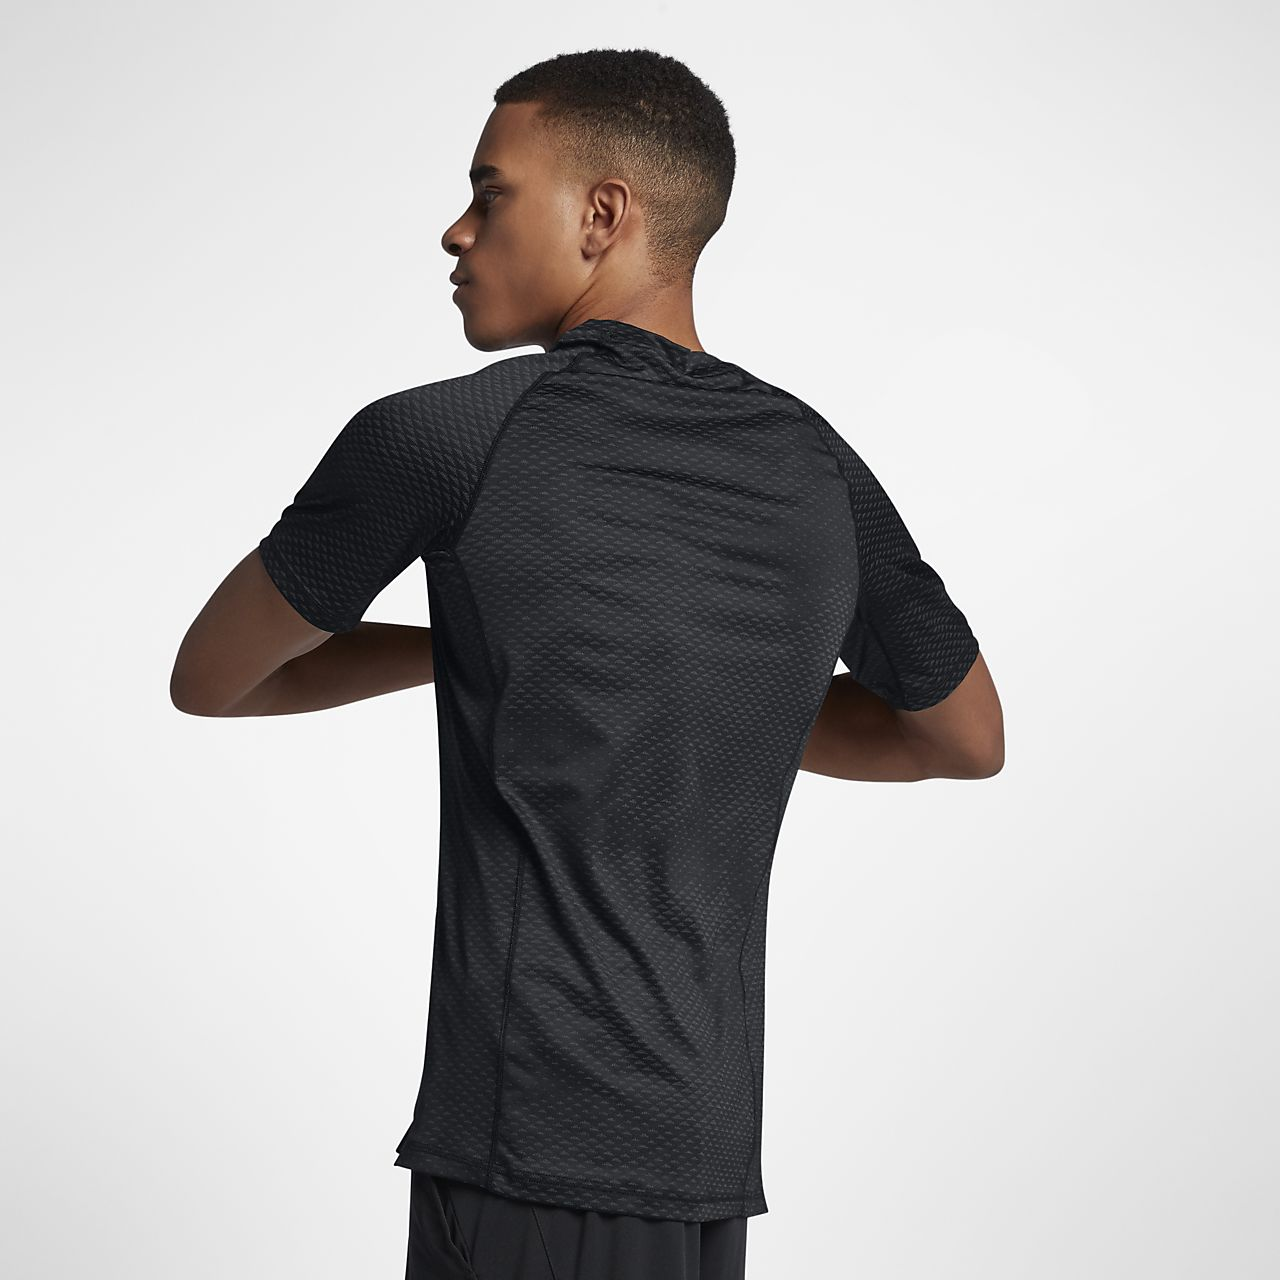 79d09a0e8d Nike Pro HyperCool Men's Short-Sleeve Training Top. Nike.com GB